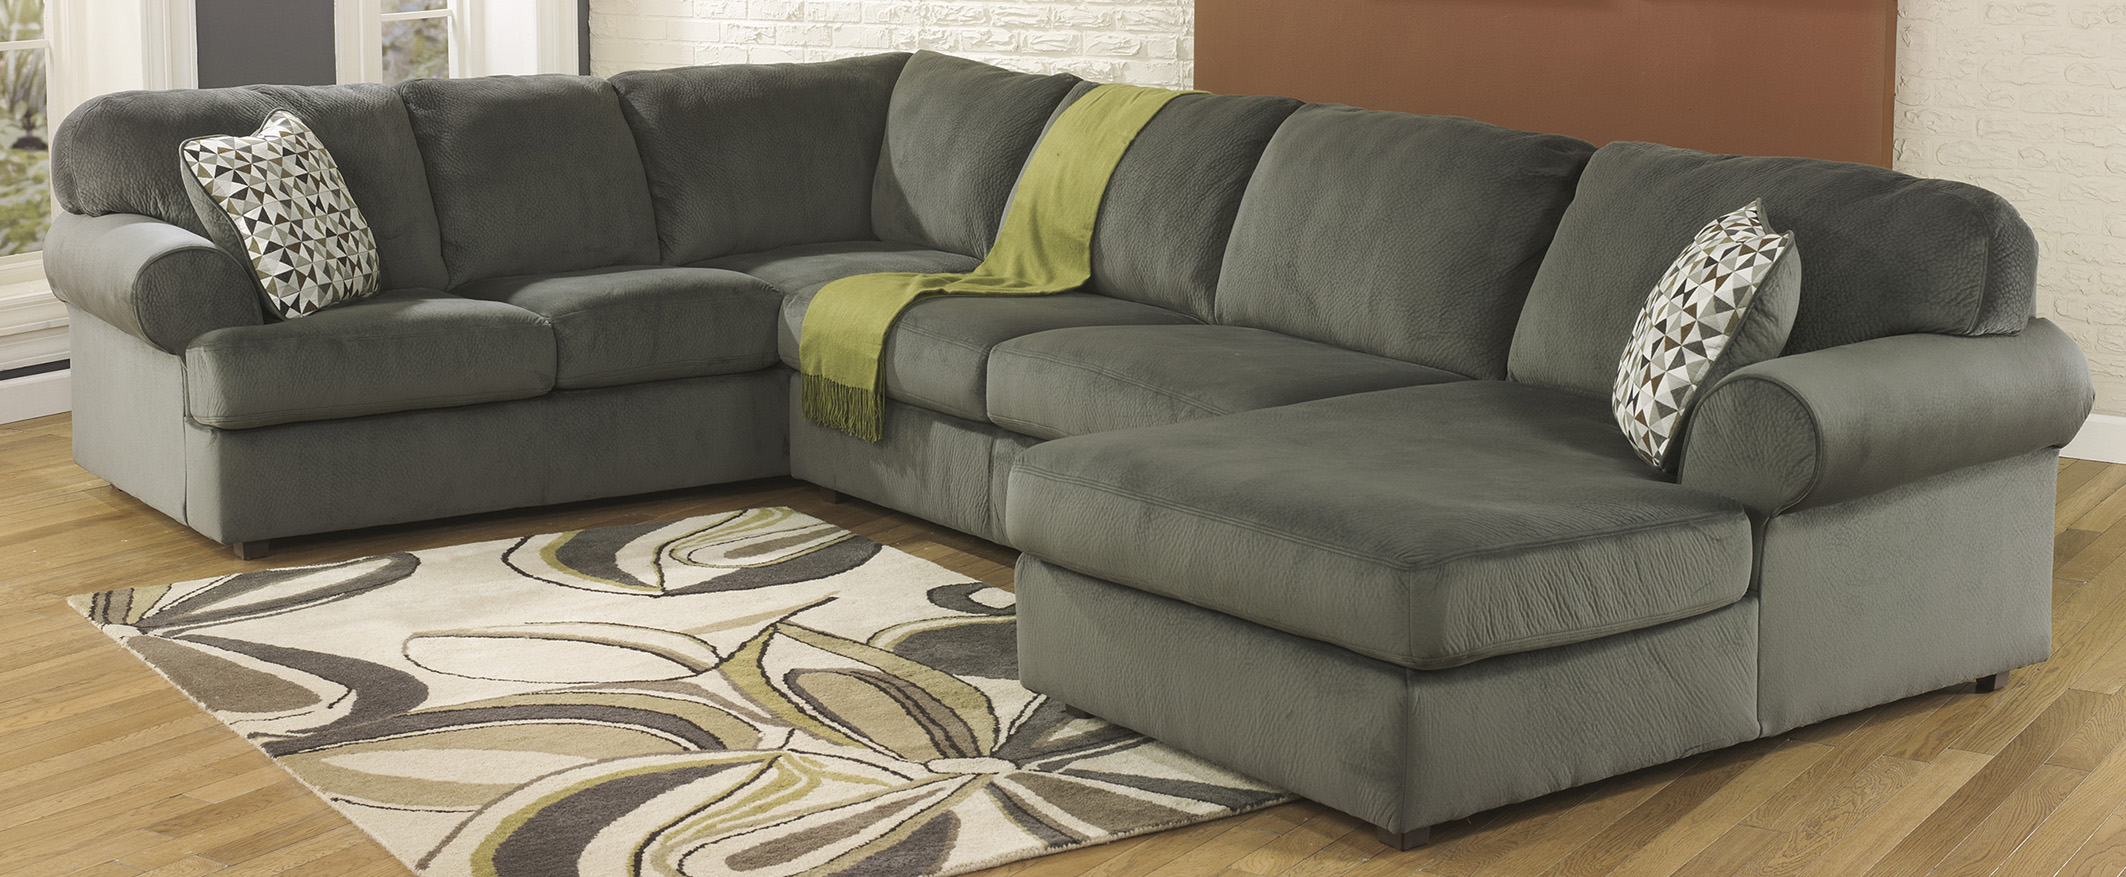 buy show jessa furniture sectionals manufacturer local outlet place living sofa austin billwedge room in dune all sw canyon ashley sectional